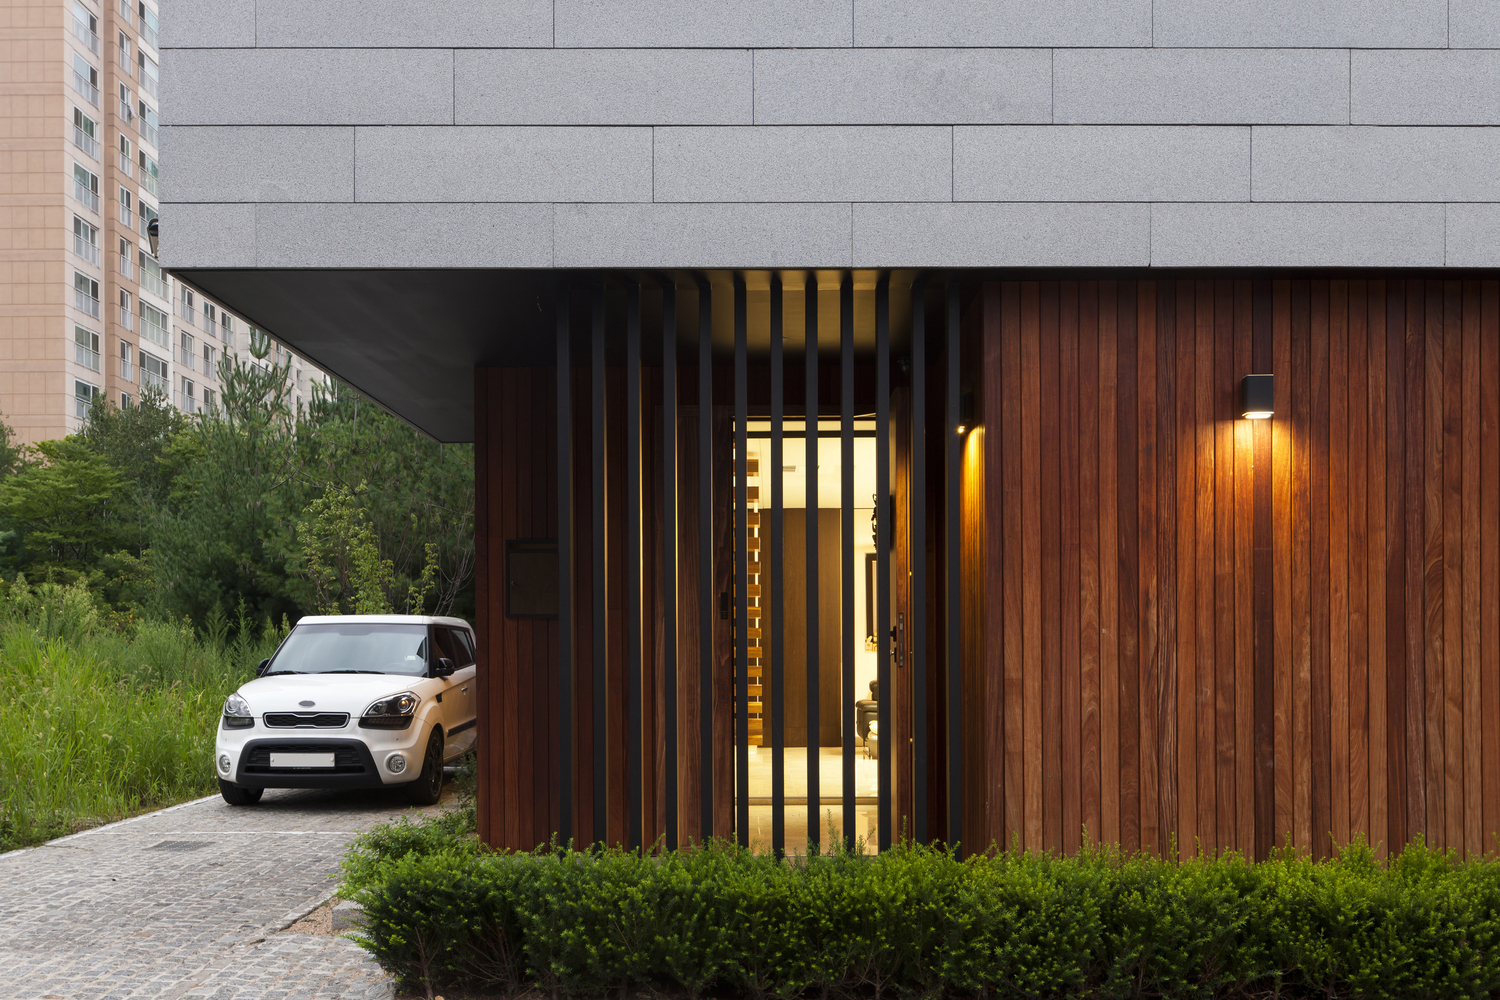 Yongin Dongsanjae / Lee.haan.architects